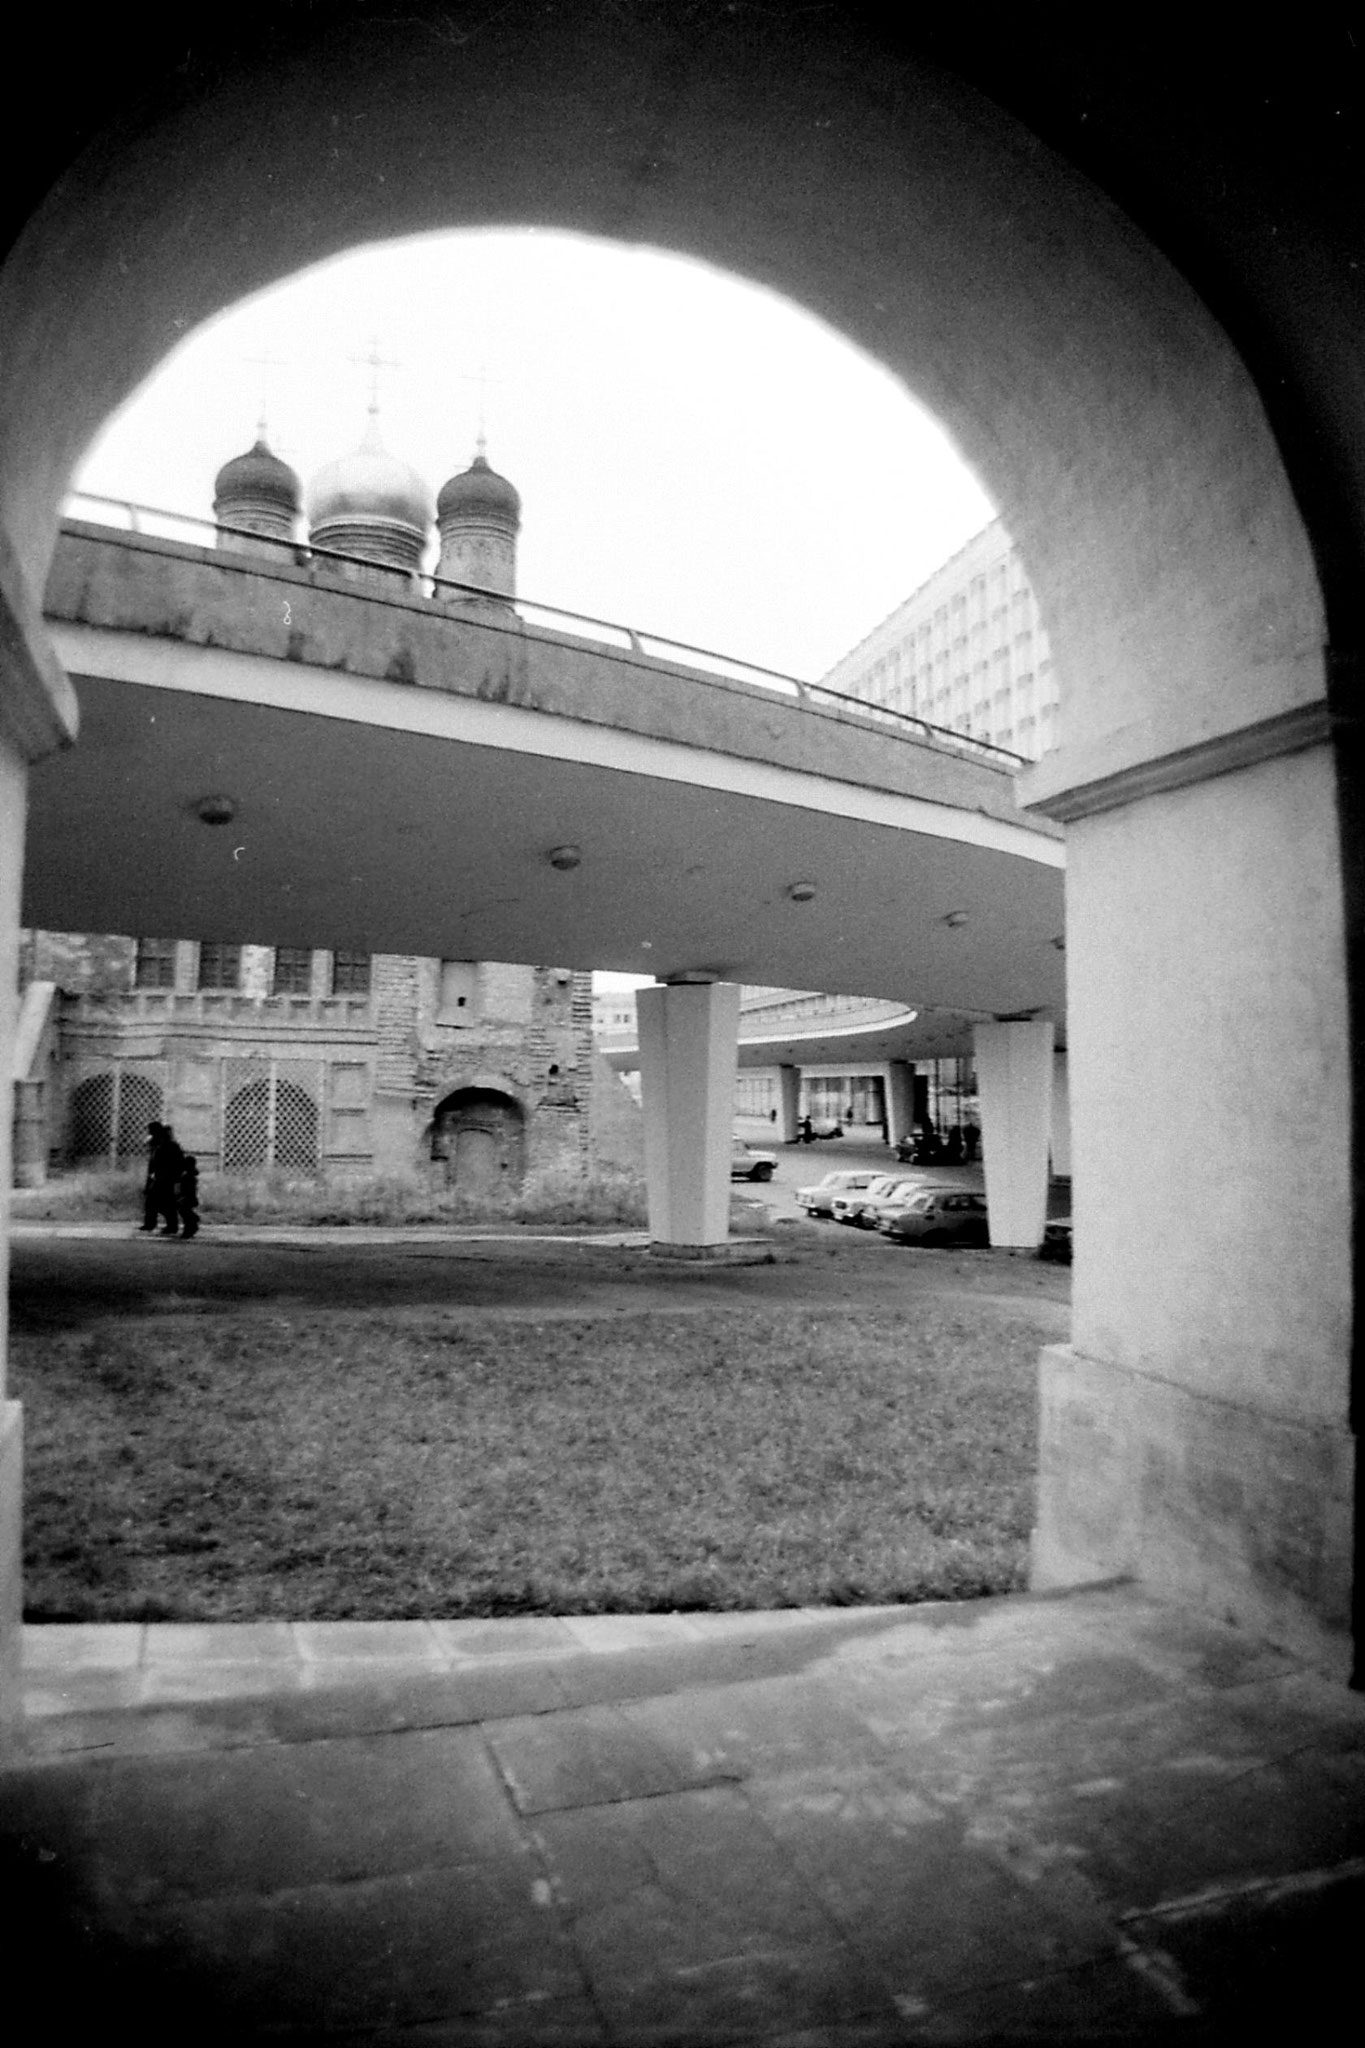 17/10/1988: 6: houses and churches in front of hotel